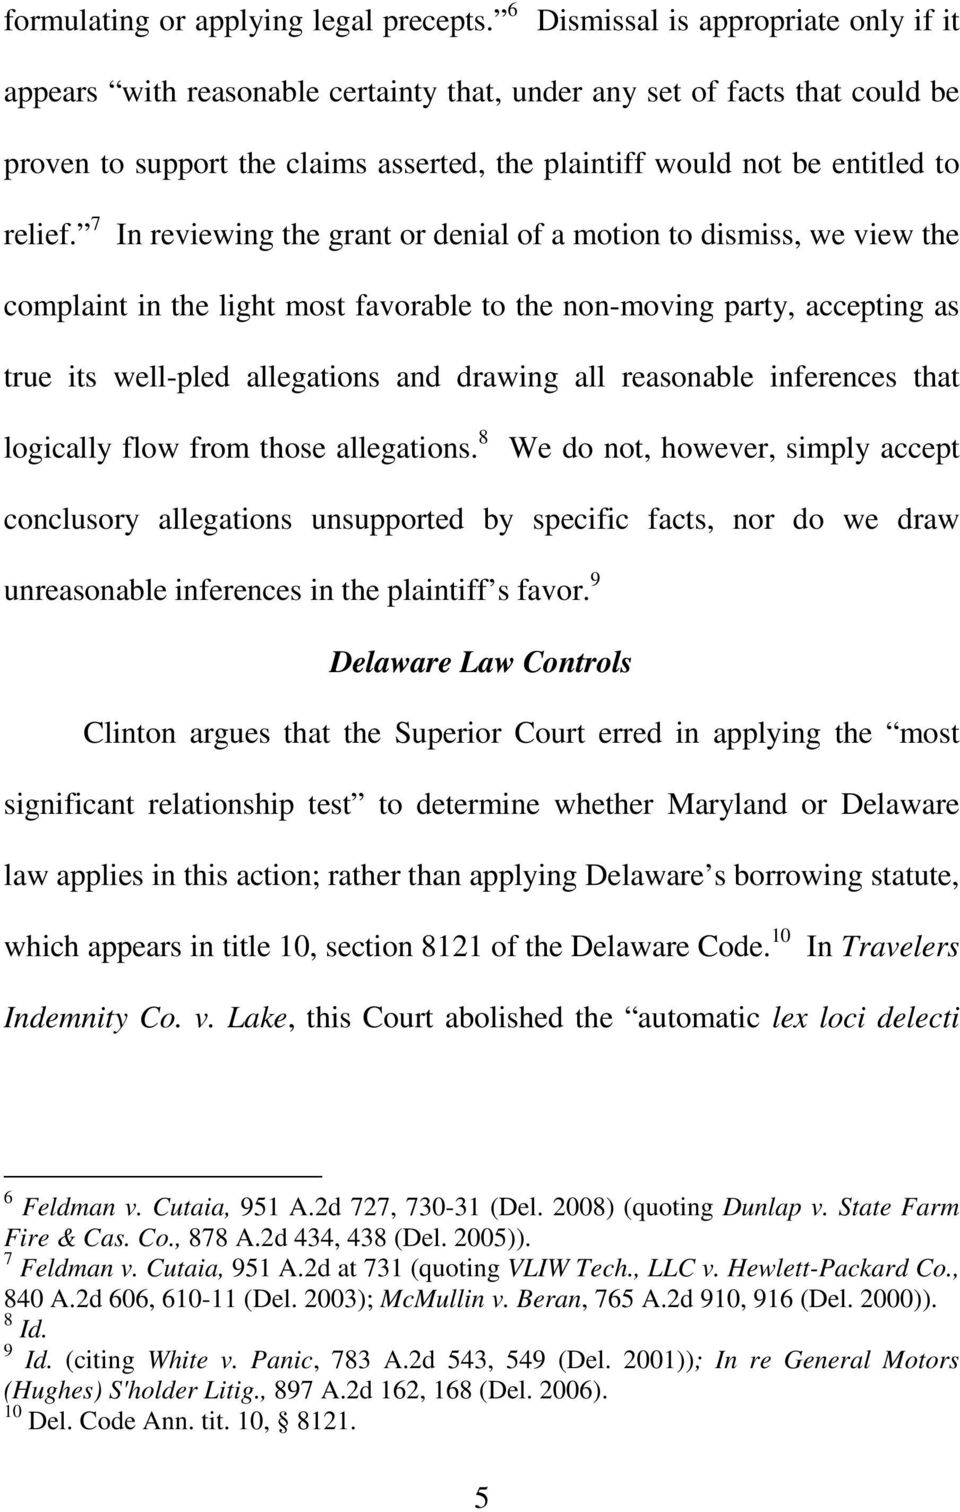 7 In reviewing the grant or denial of a motion to dismiss, we view the complaint in the light most favorable to the non-moving party, accepting as true its well-pled allegations and drawing all